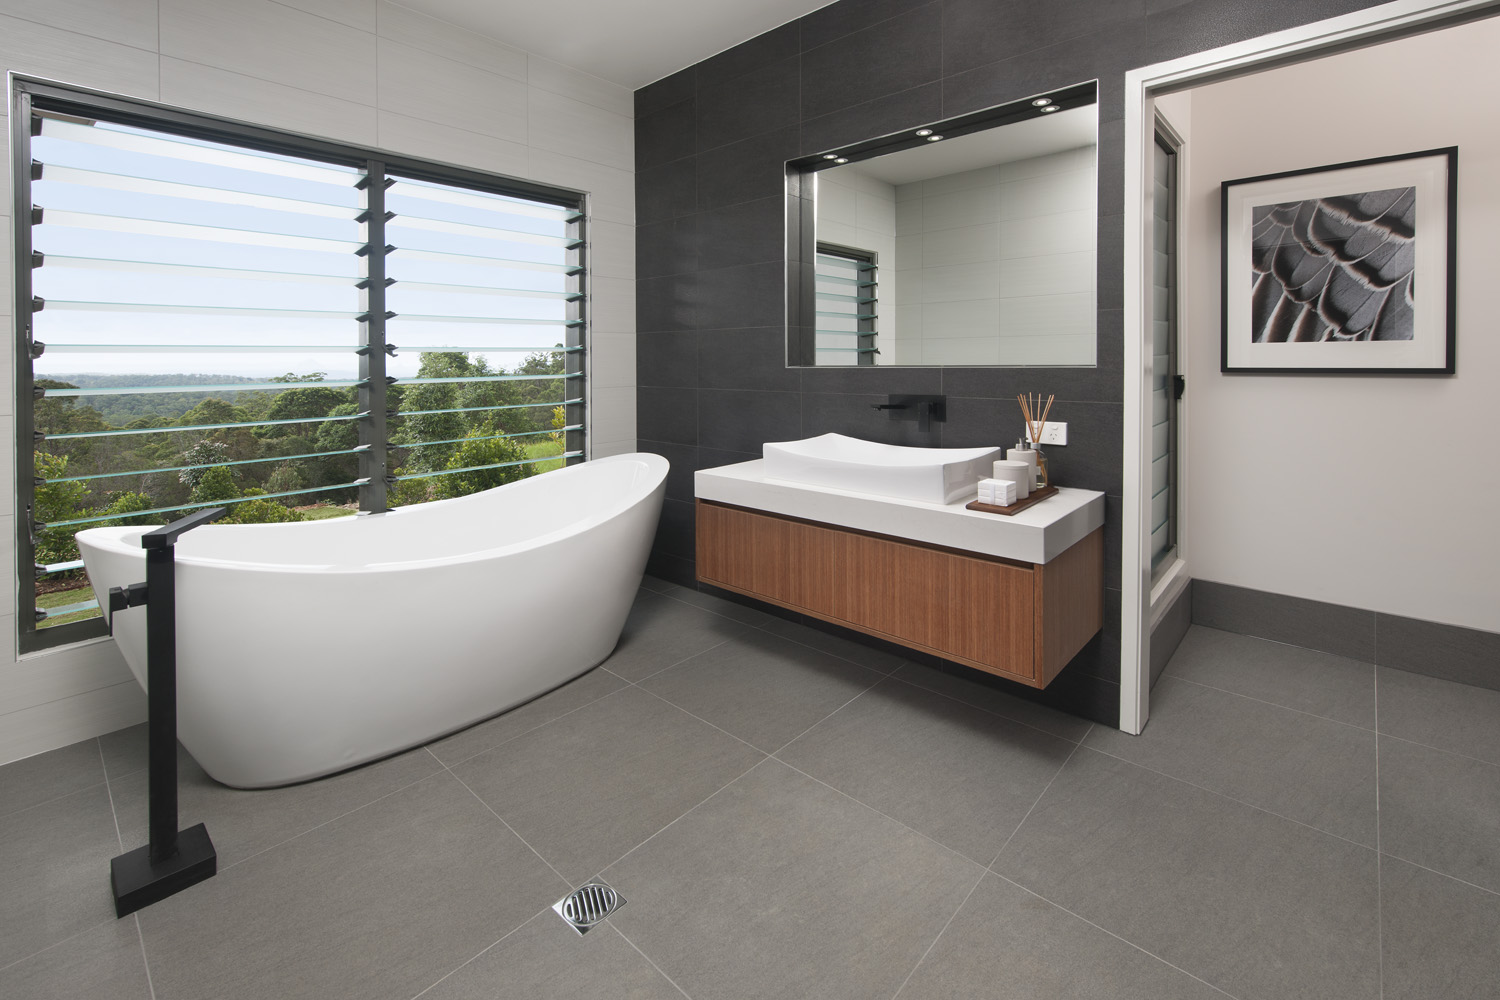 A freestanding tub by the window is a serene spot for relaxation